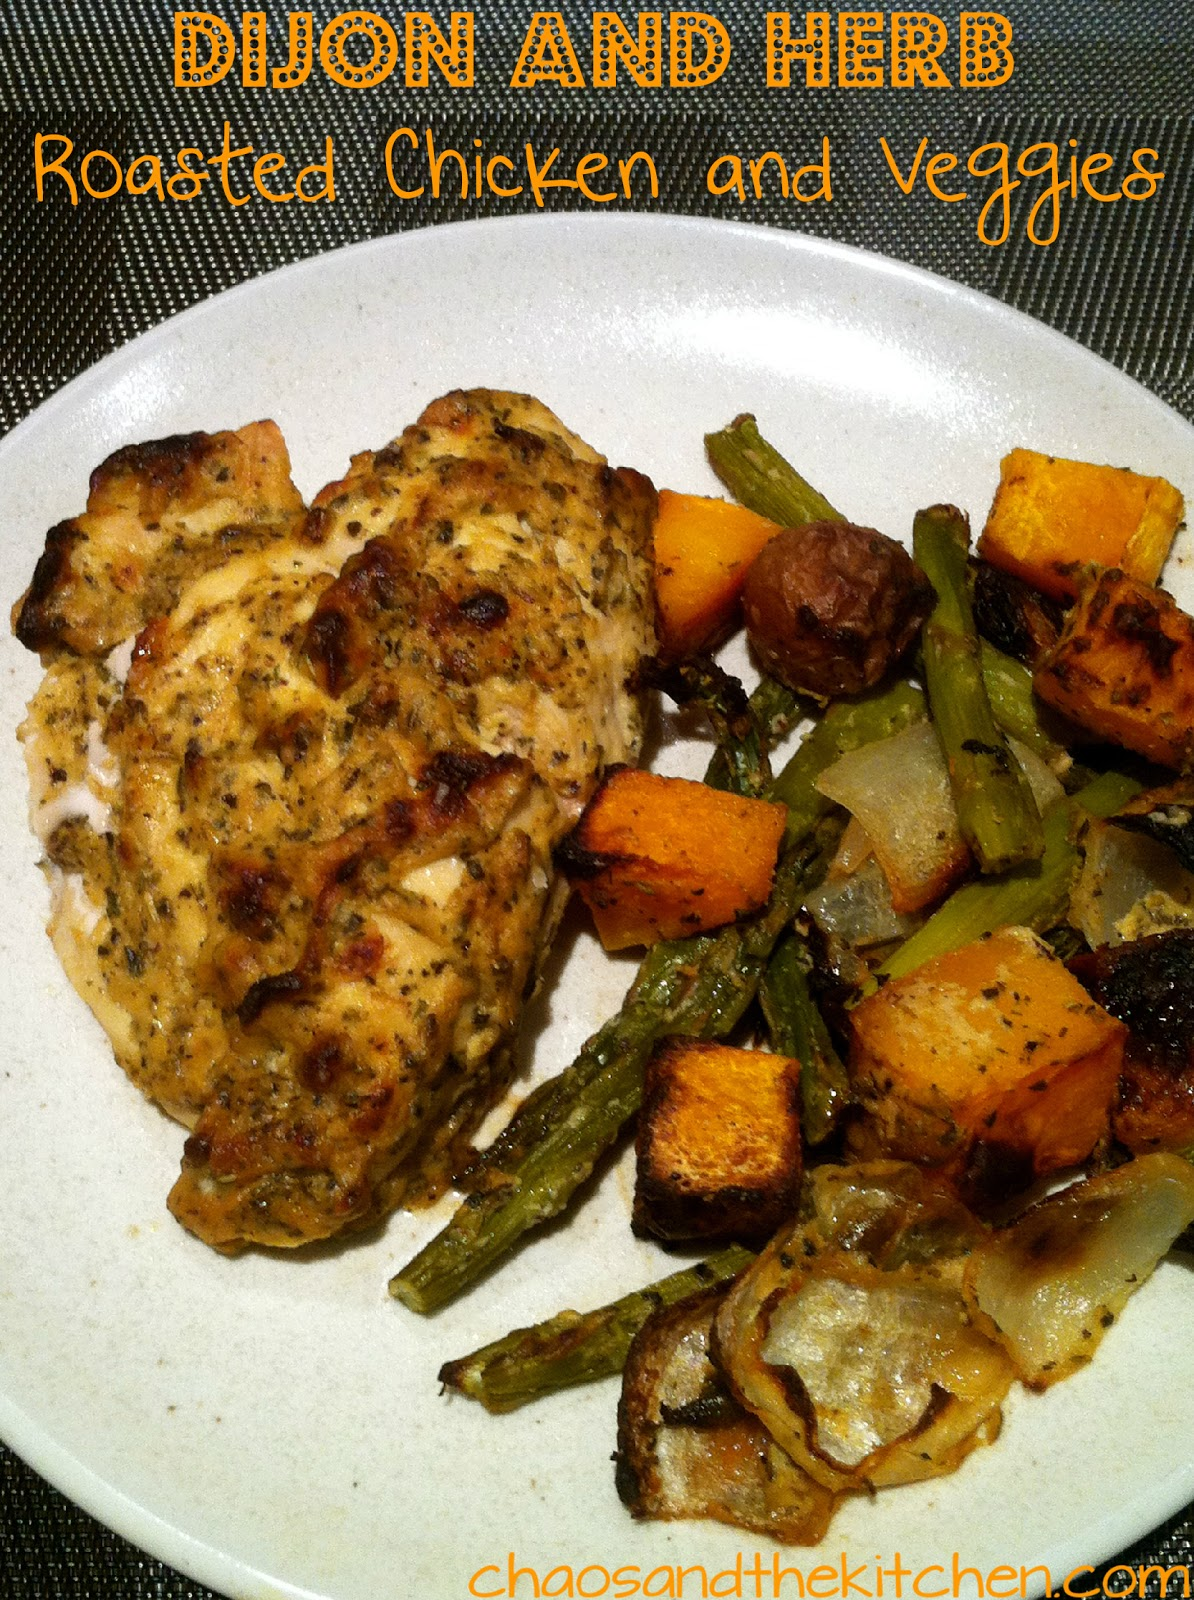 Chaos and the Kitchen: Dijon and Herb Roasted Chicken and Vegetables